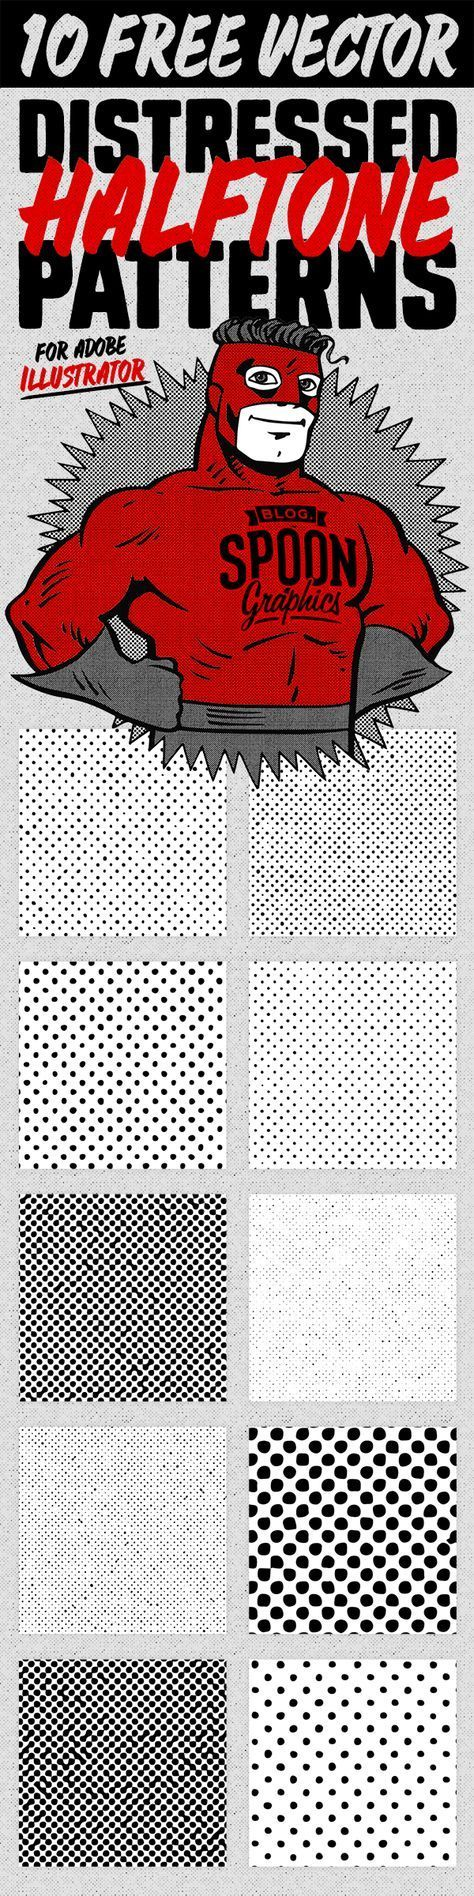 10 Distressed Vector Halftone Patterns for Illustrator (Blog.SpoonGraphics)